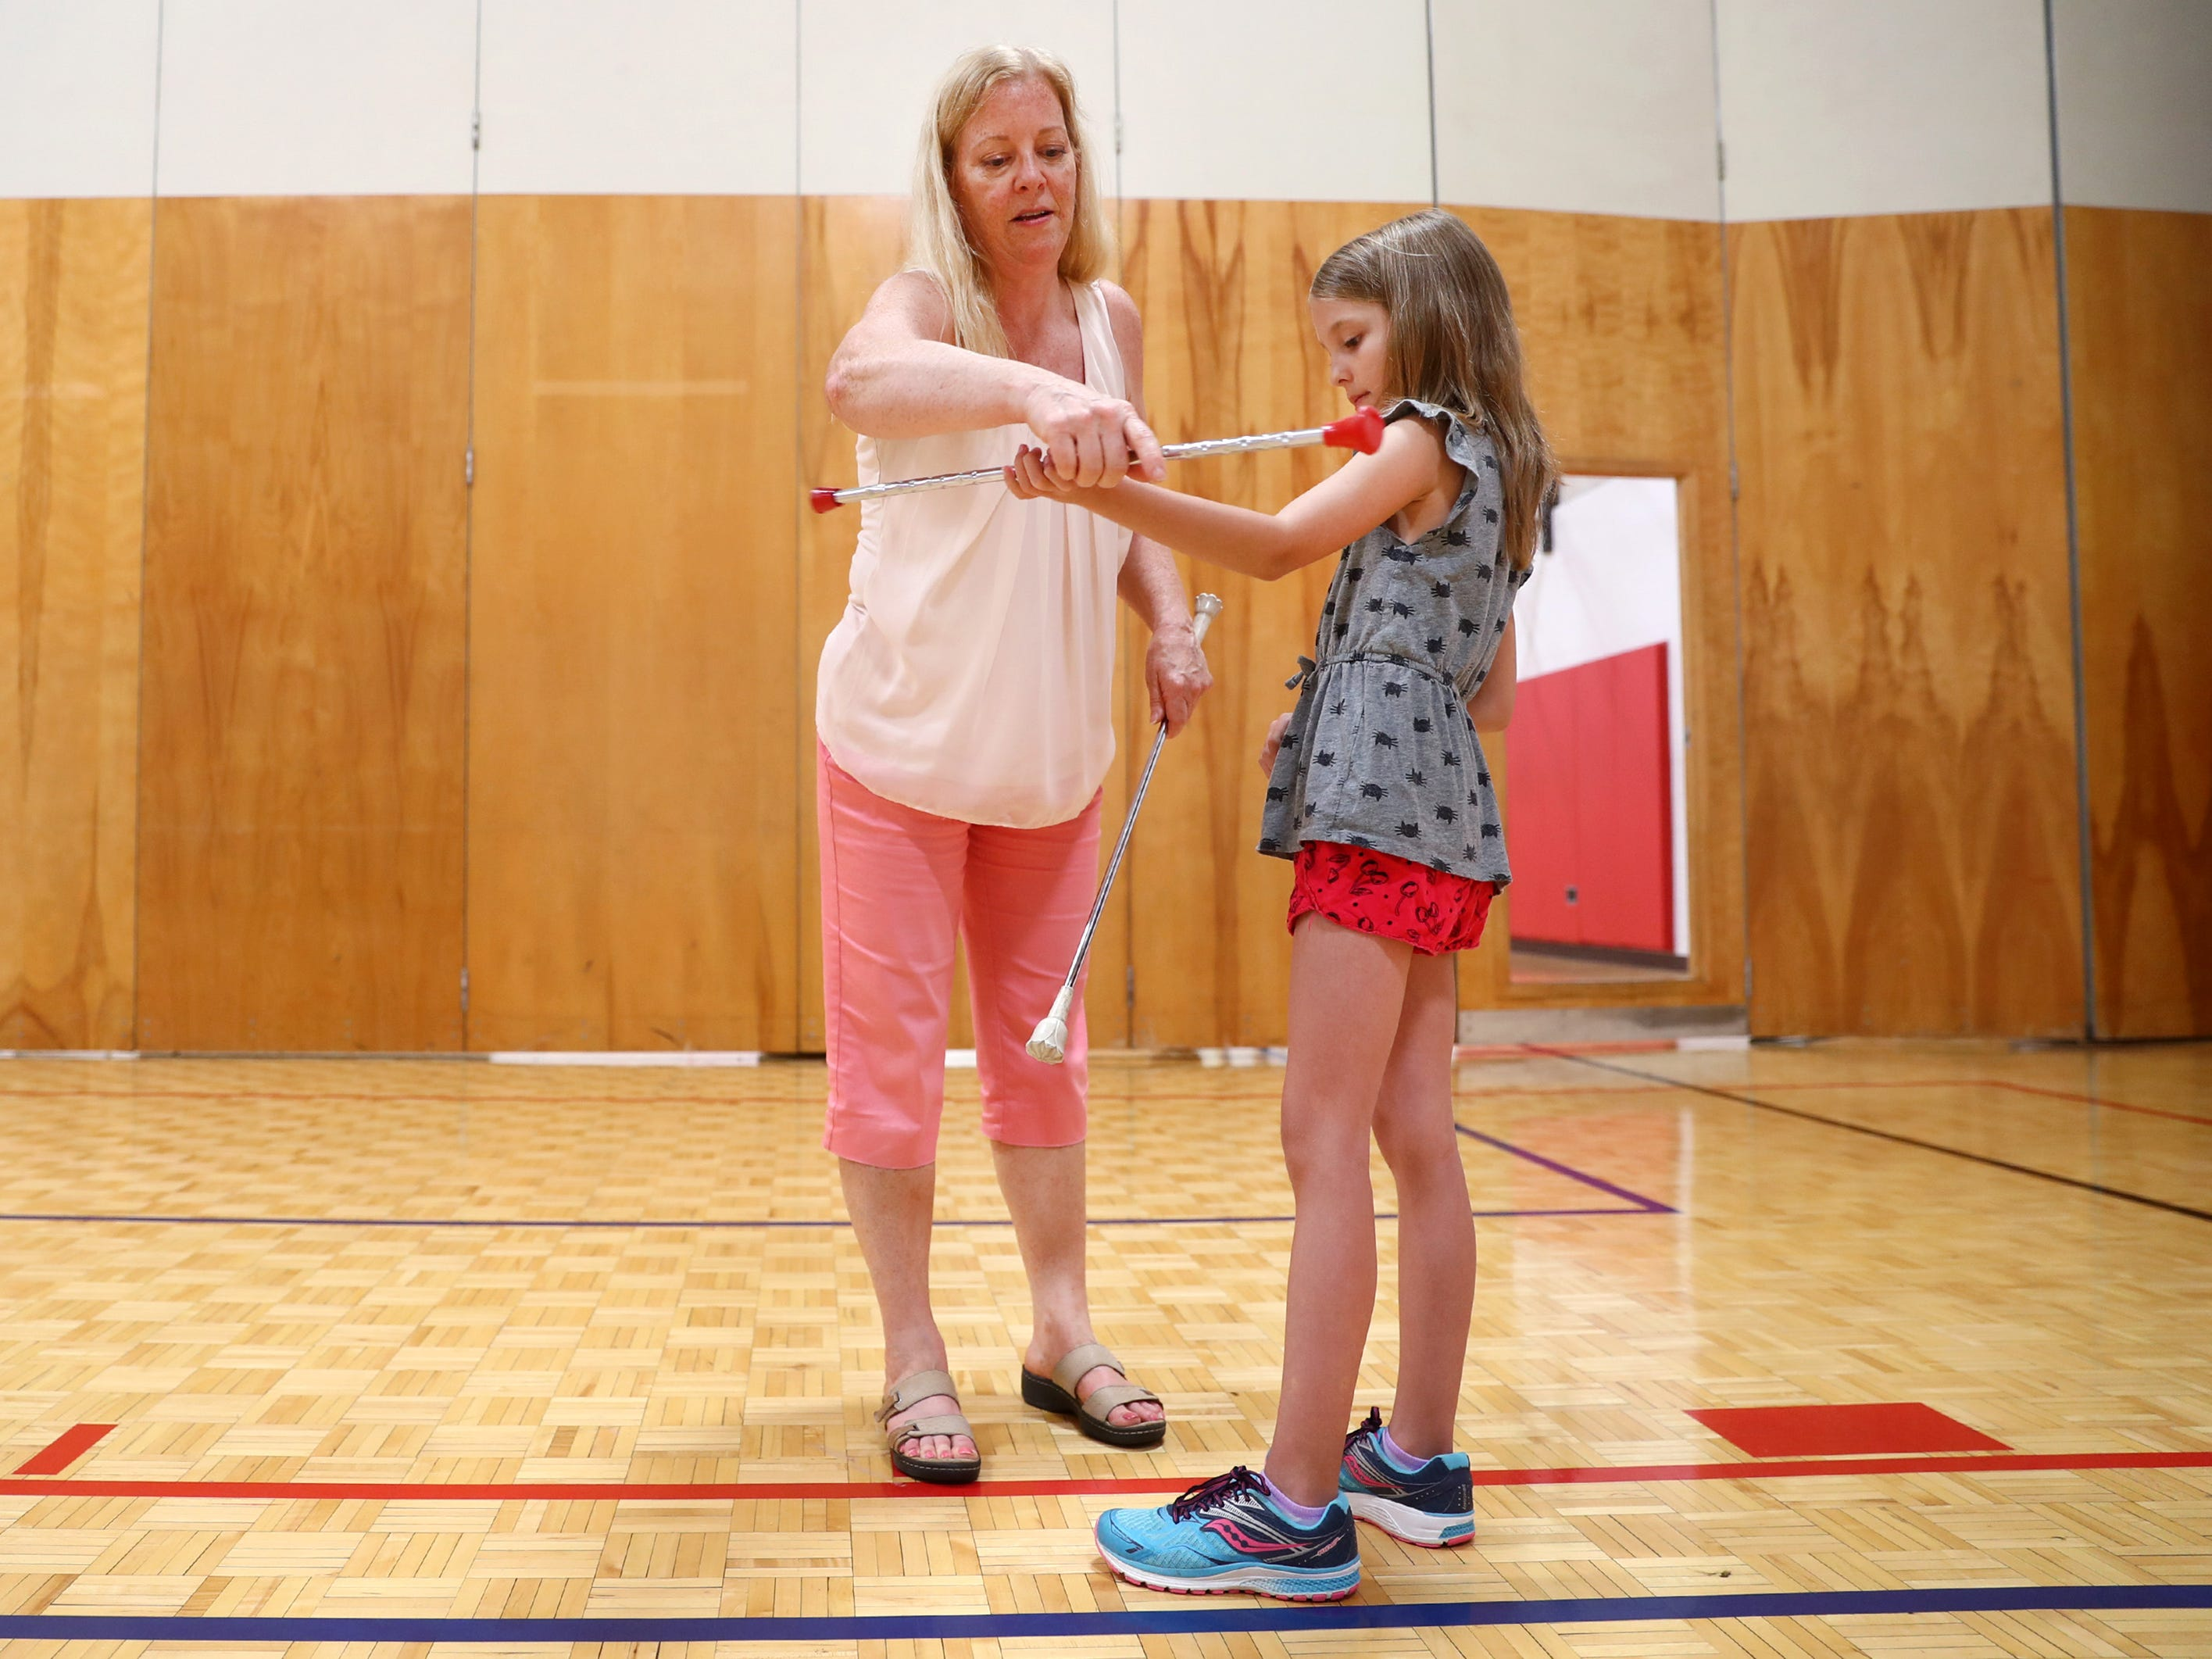 Neenah, WI – Maripat Franke, a special education teacher at Neenah High School currently enrolled in the Residency In Teacher Education 2.0 program at CESA 6, works with Cecelia Preman, 8, while teaching a baton twirling class at the Neenah/Menasha YMCA. Franke teaches the class Monday nights after school.